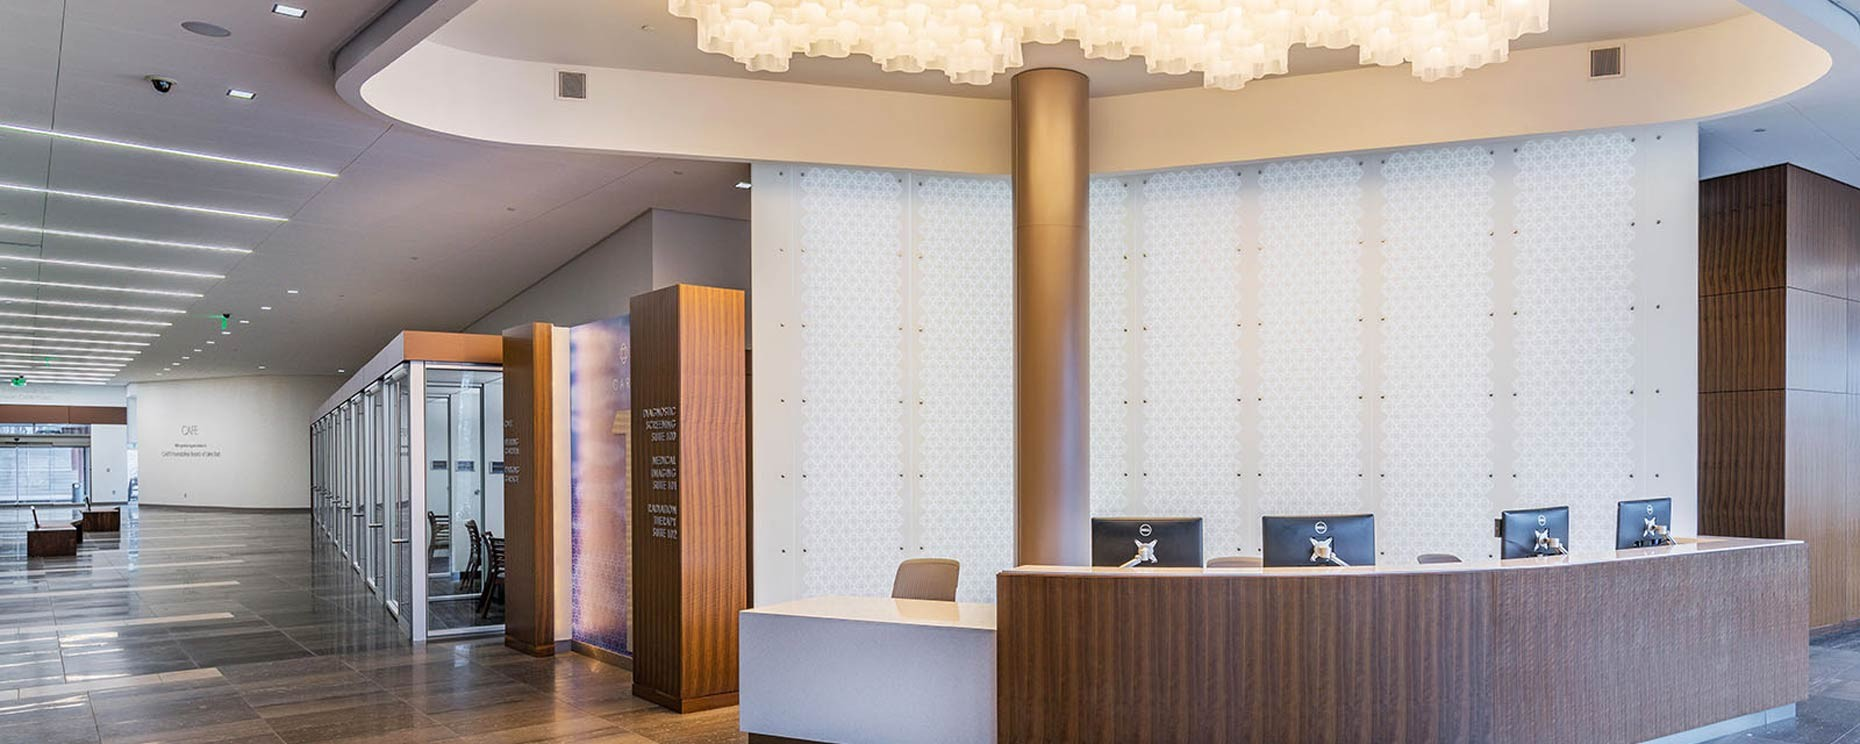 lobby-architecture-carti-cancer-center